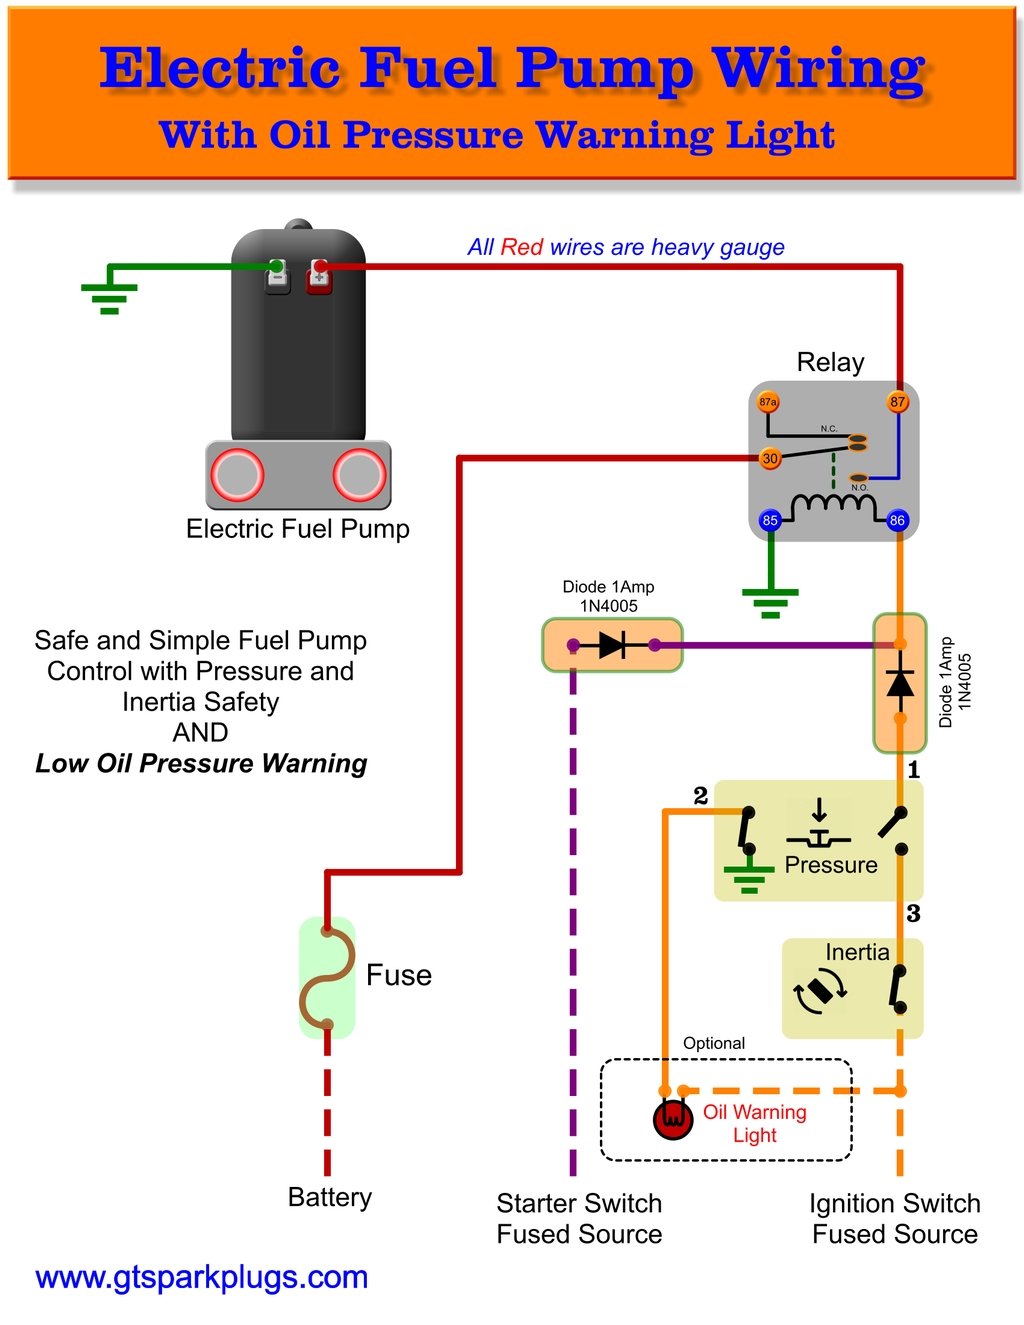 Electric Fuel Pump Wiring Diagram Gtsparkplugs Way Switch In Addition 3 Light This Is A Simple Guide To Safer For Your Spend Some Time Things Up Right And The Event Of Problem It Can Save You